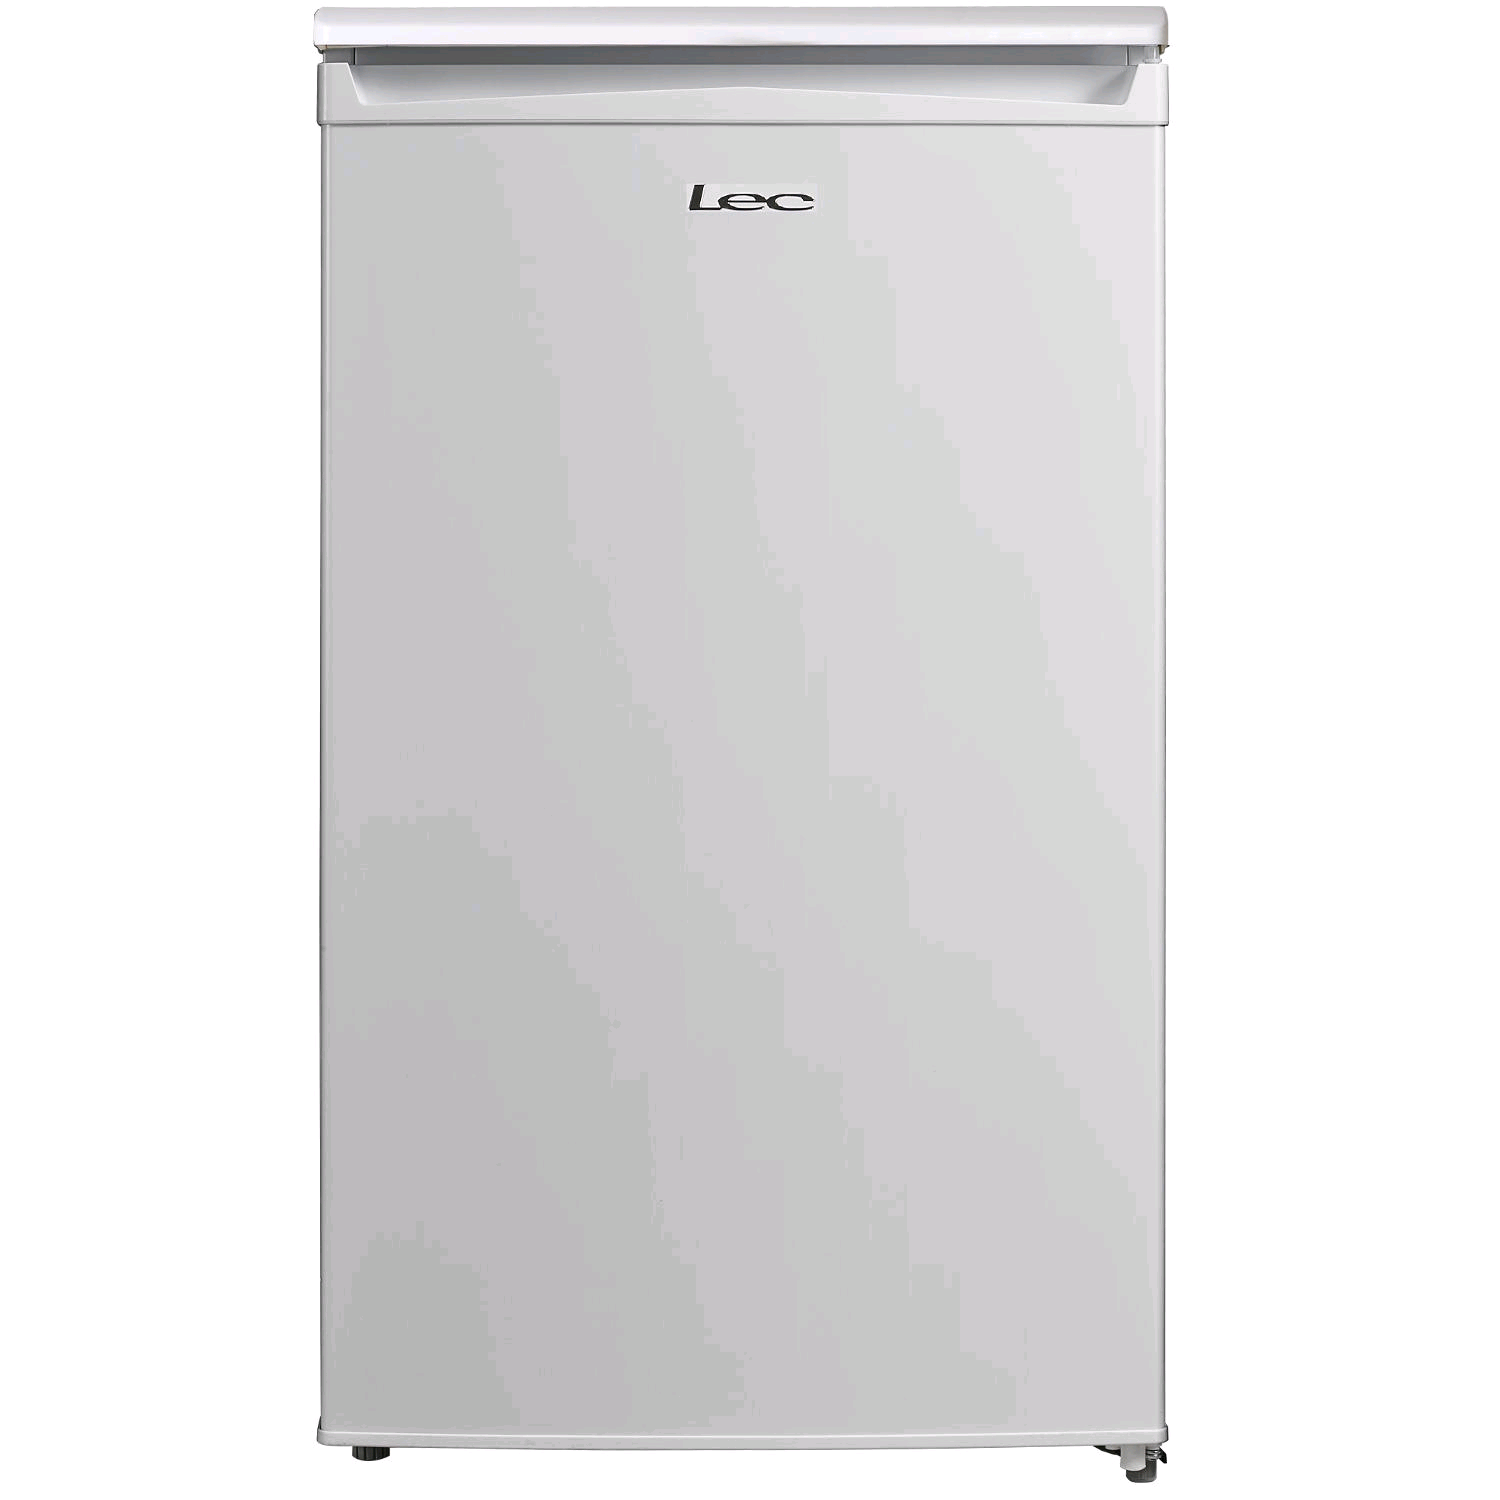 Lec Undercounter Fridge 97ltr c/w Icebox H865 W527